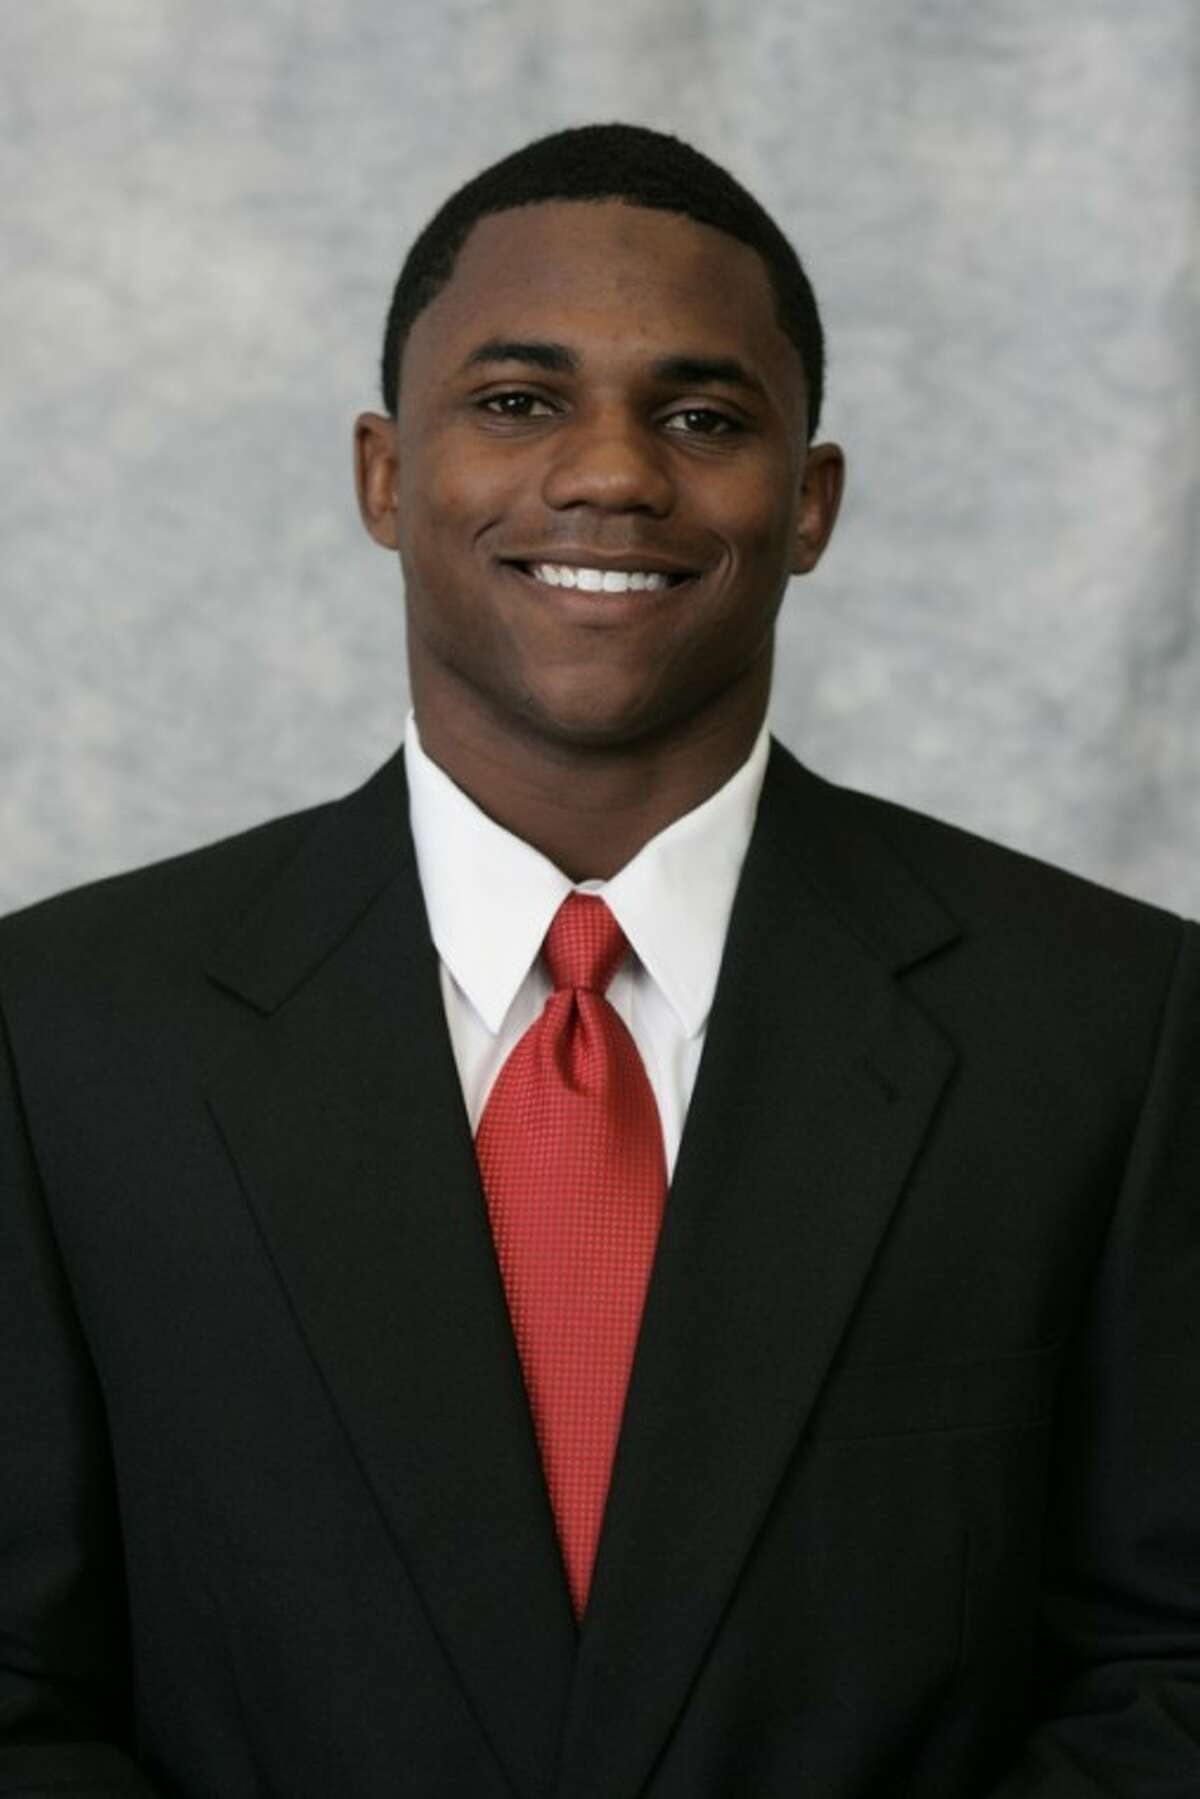 Baron Batch is a former gridiron standout at Midland High and Texas Tech university.